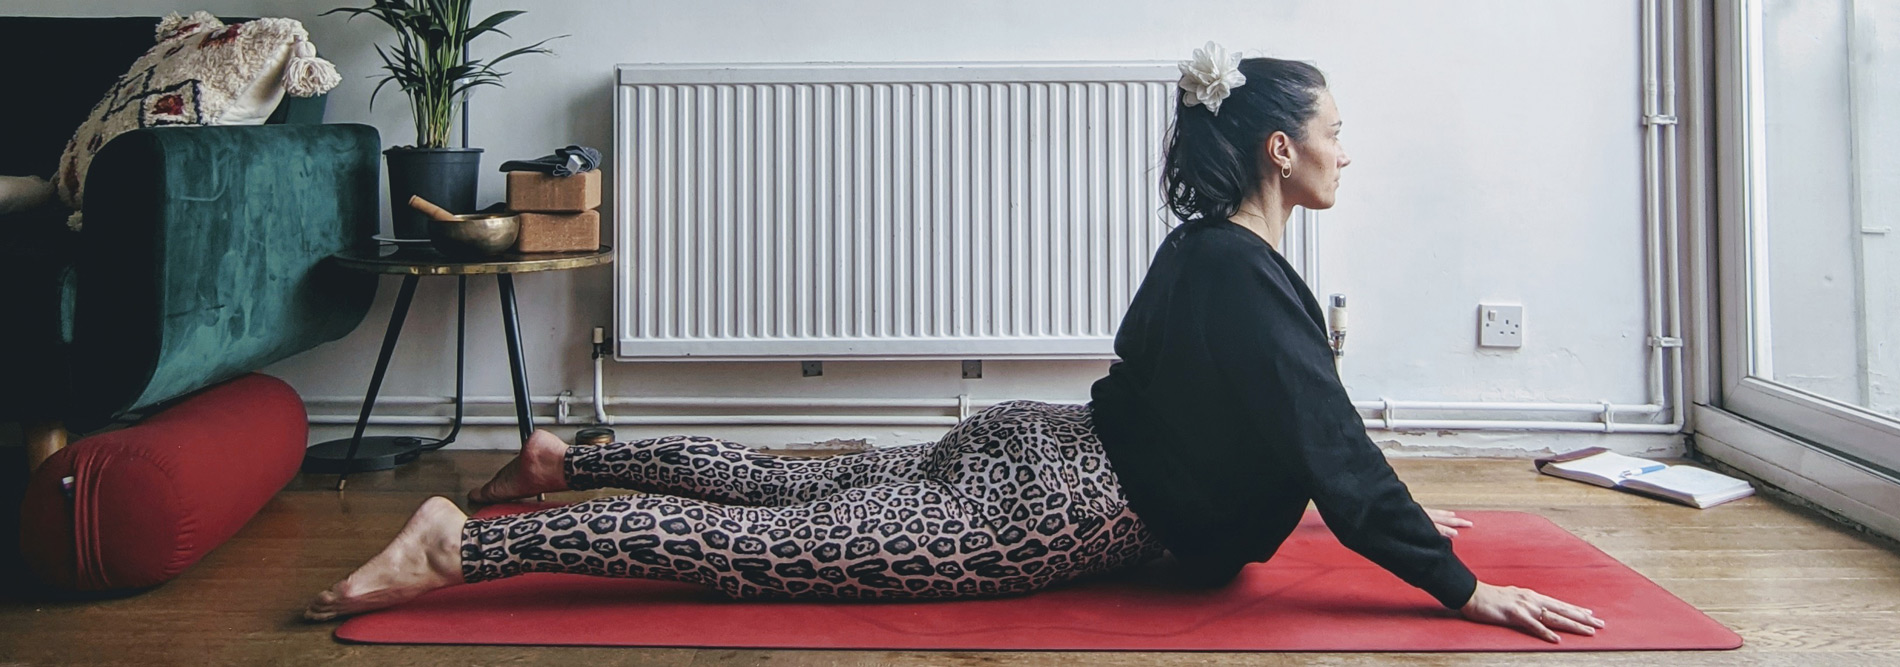 Formation continue: Yin yoga